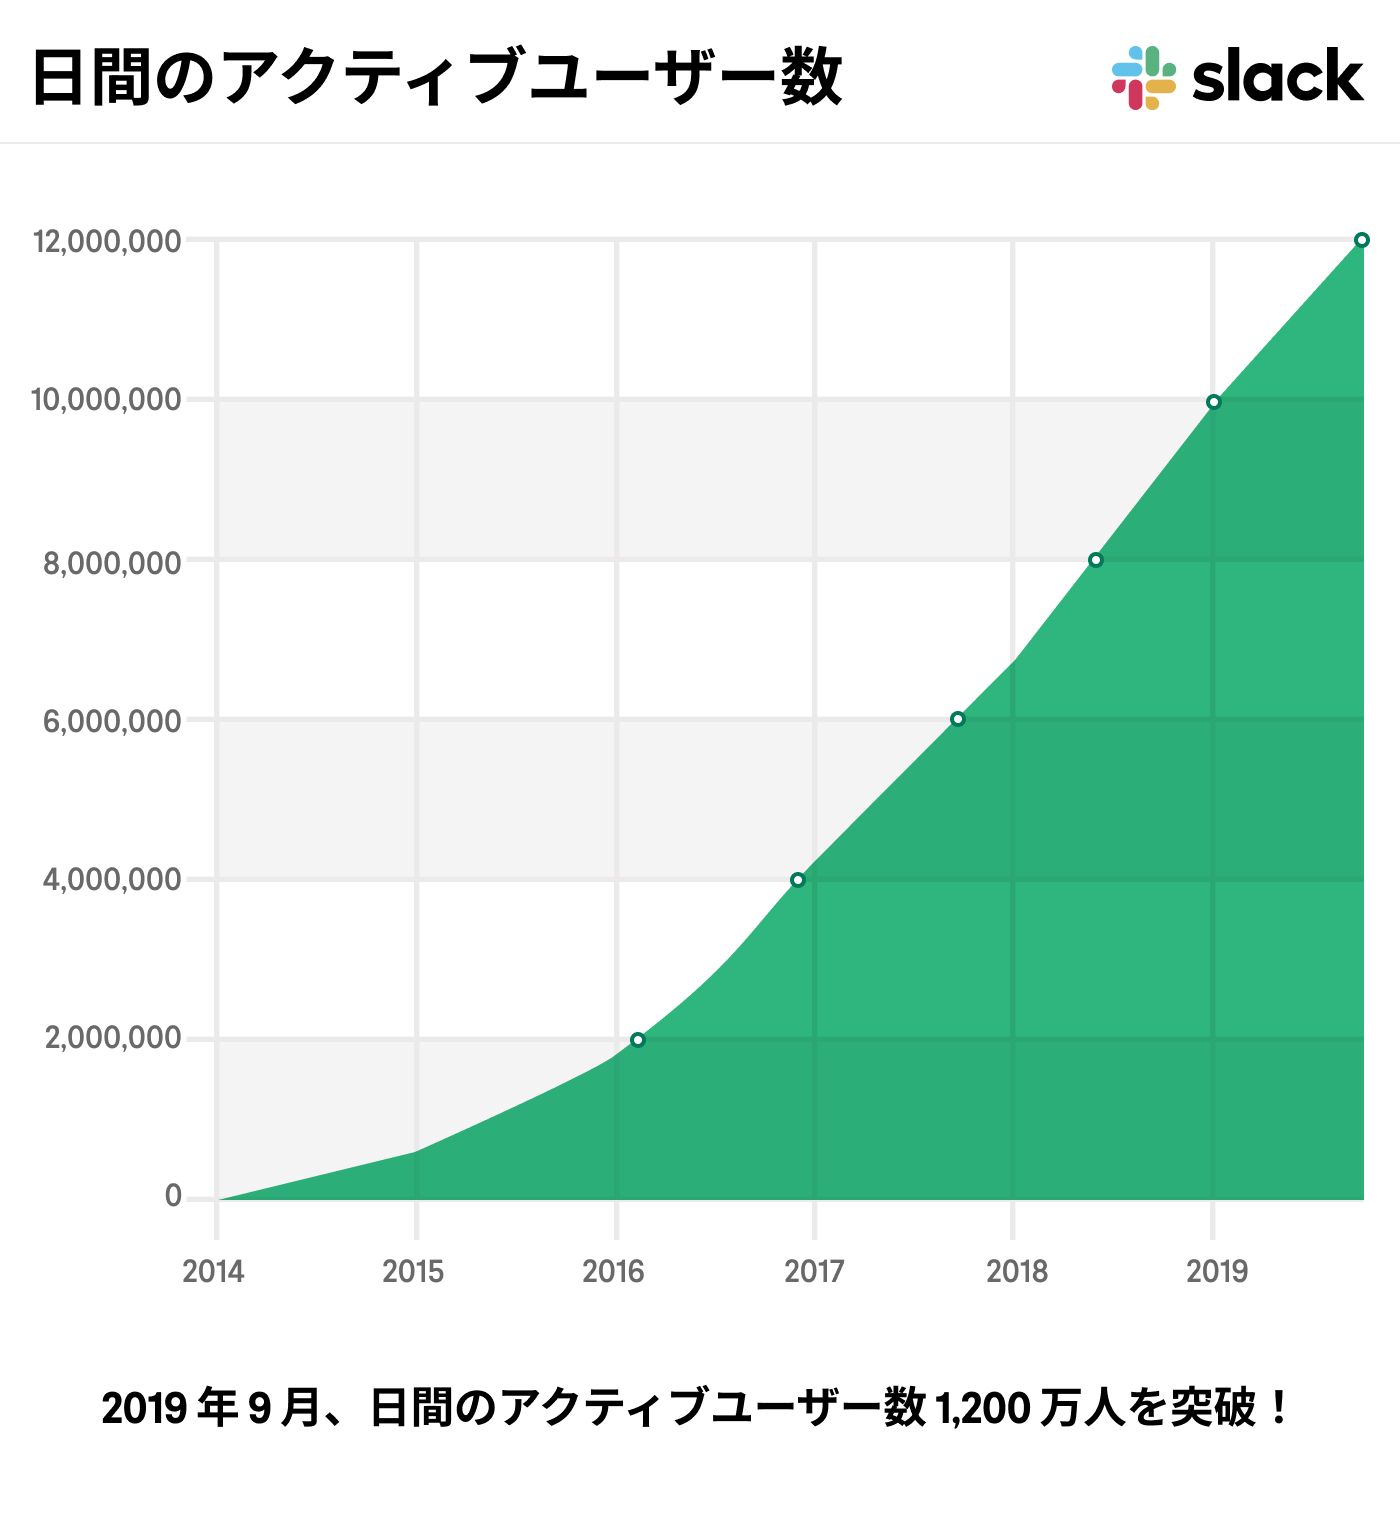 A chart that details the year-over-year growth of Slack's daily active users